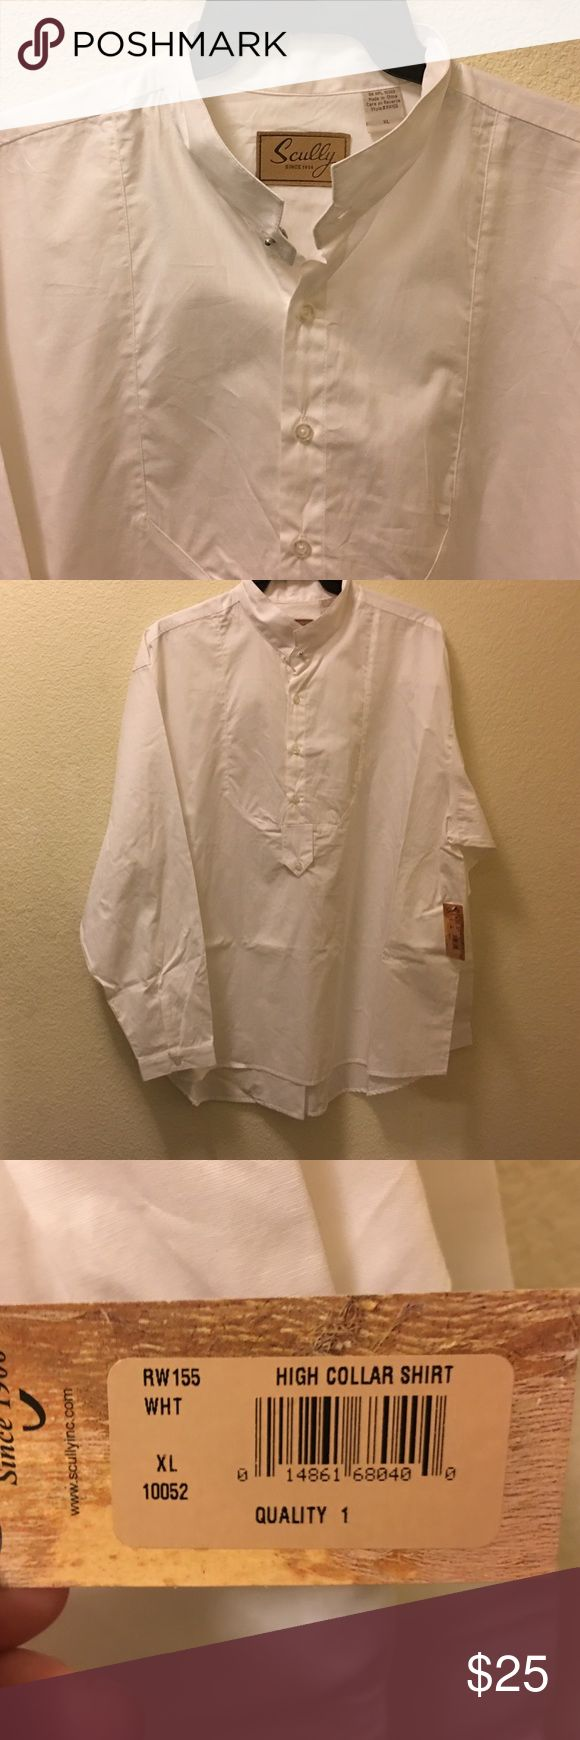 White long sleeve Scully high collar shirt White 100% cotton Scully XL high band shirt. It has the bib setting like old school western and Victorian shirts. It has a nice high band with collar stud. High enough to wear an cravat around. This shirt has never been worn. Bought it for Dickens fair but went with another. Scully Shirts Dress Shirts